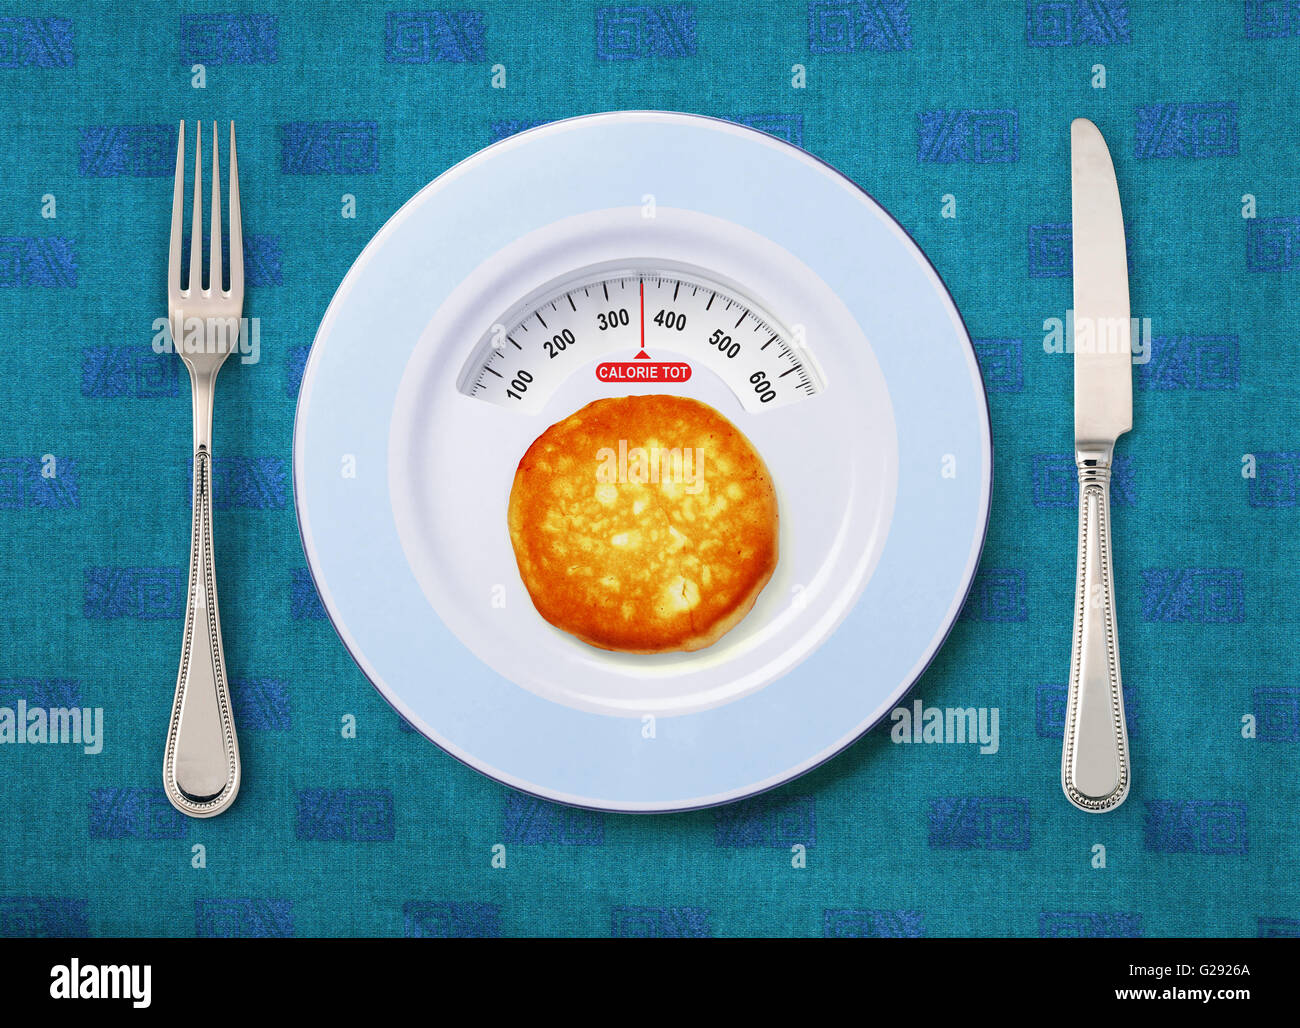 view of calorie tot in pancake that on white plate - Stock Image